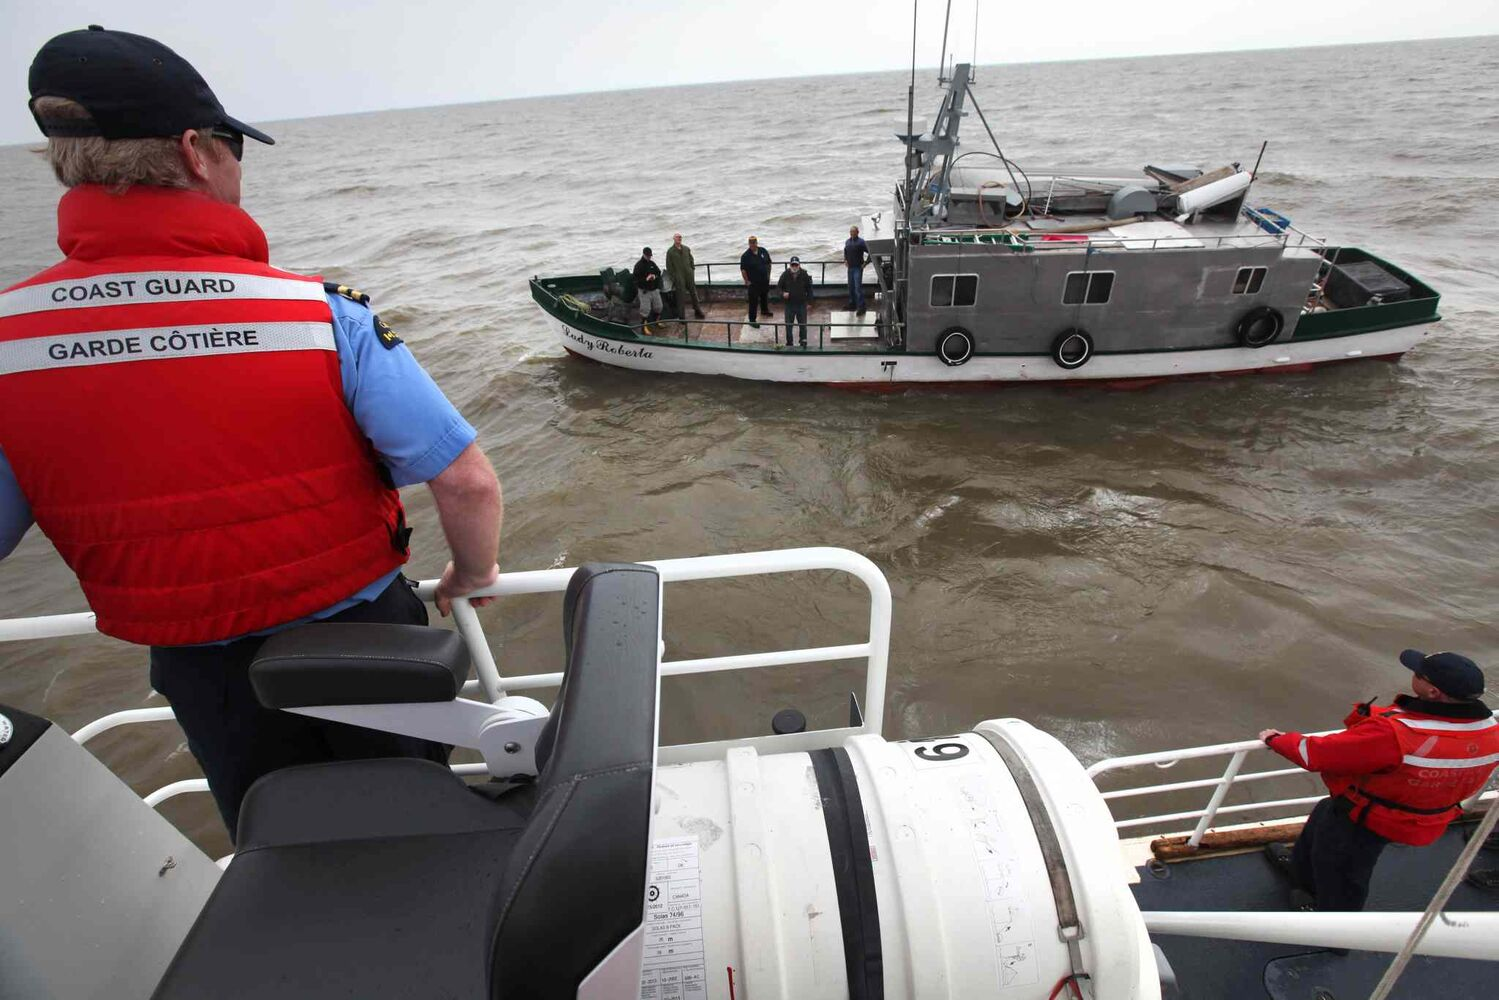 A rescue vessel pulls alongside the Lady Roberta. (Ruth Bonneville / Winnipeg Free Press)